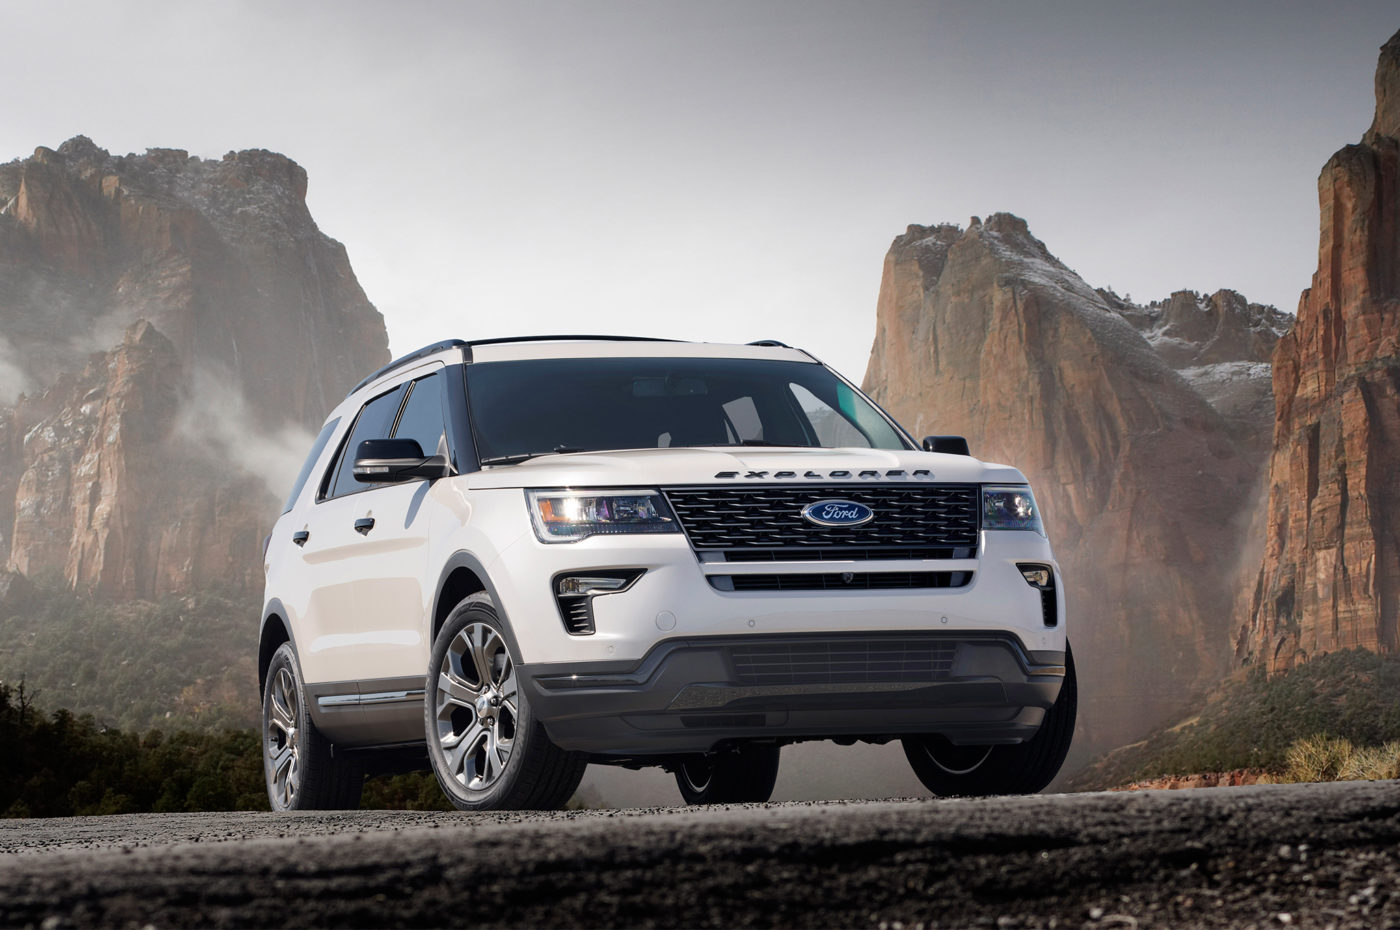 1400x930 - Ford Explorer Wallpapers 9